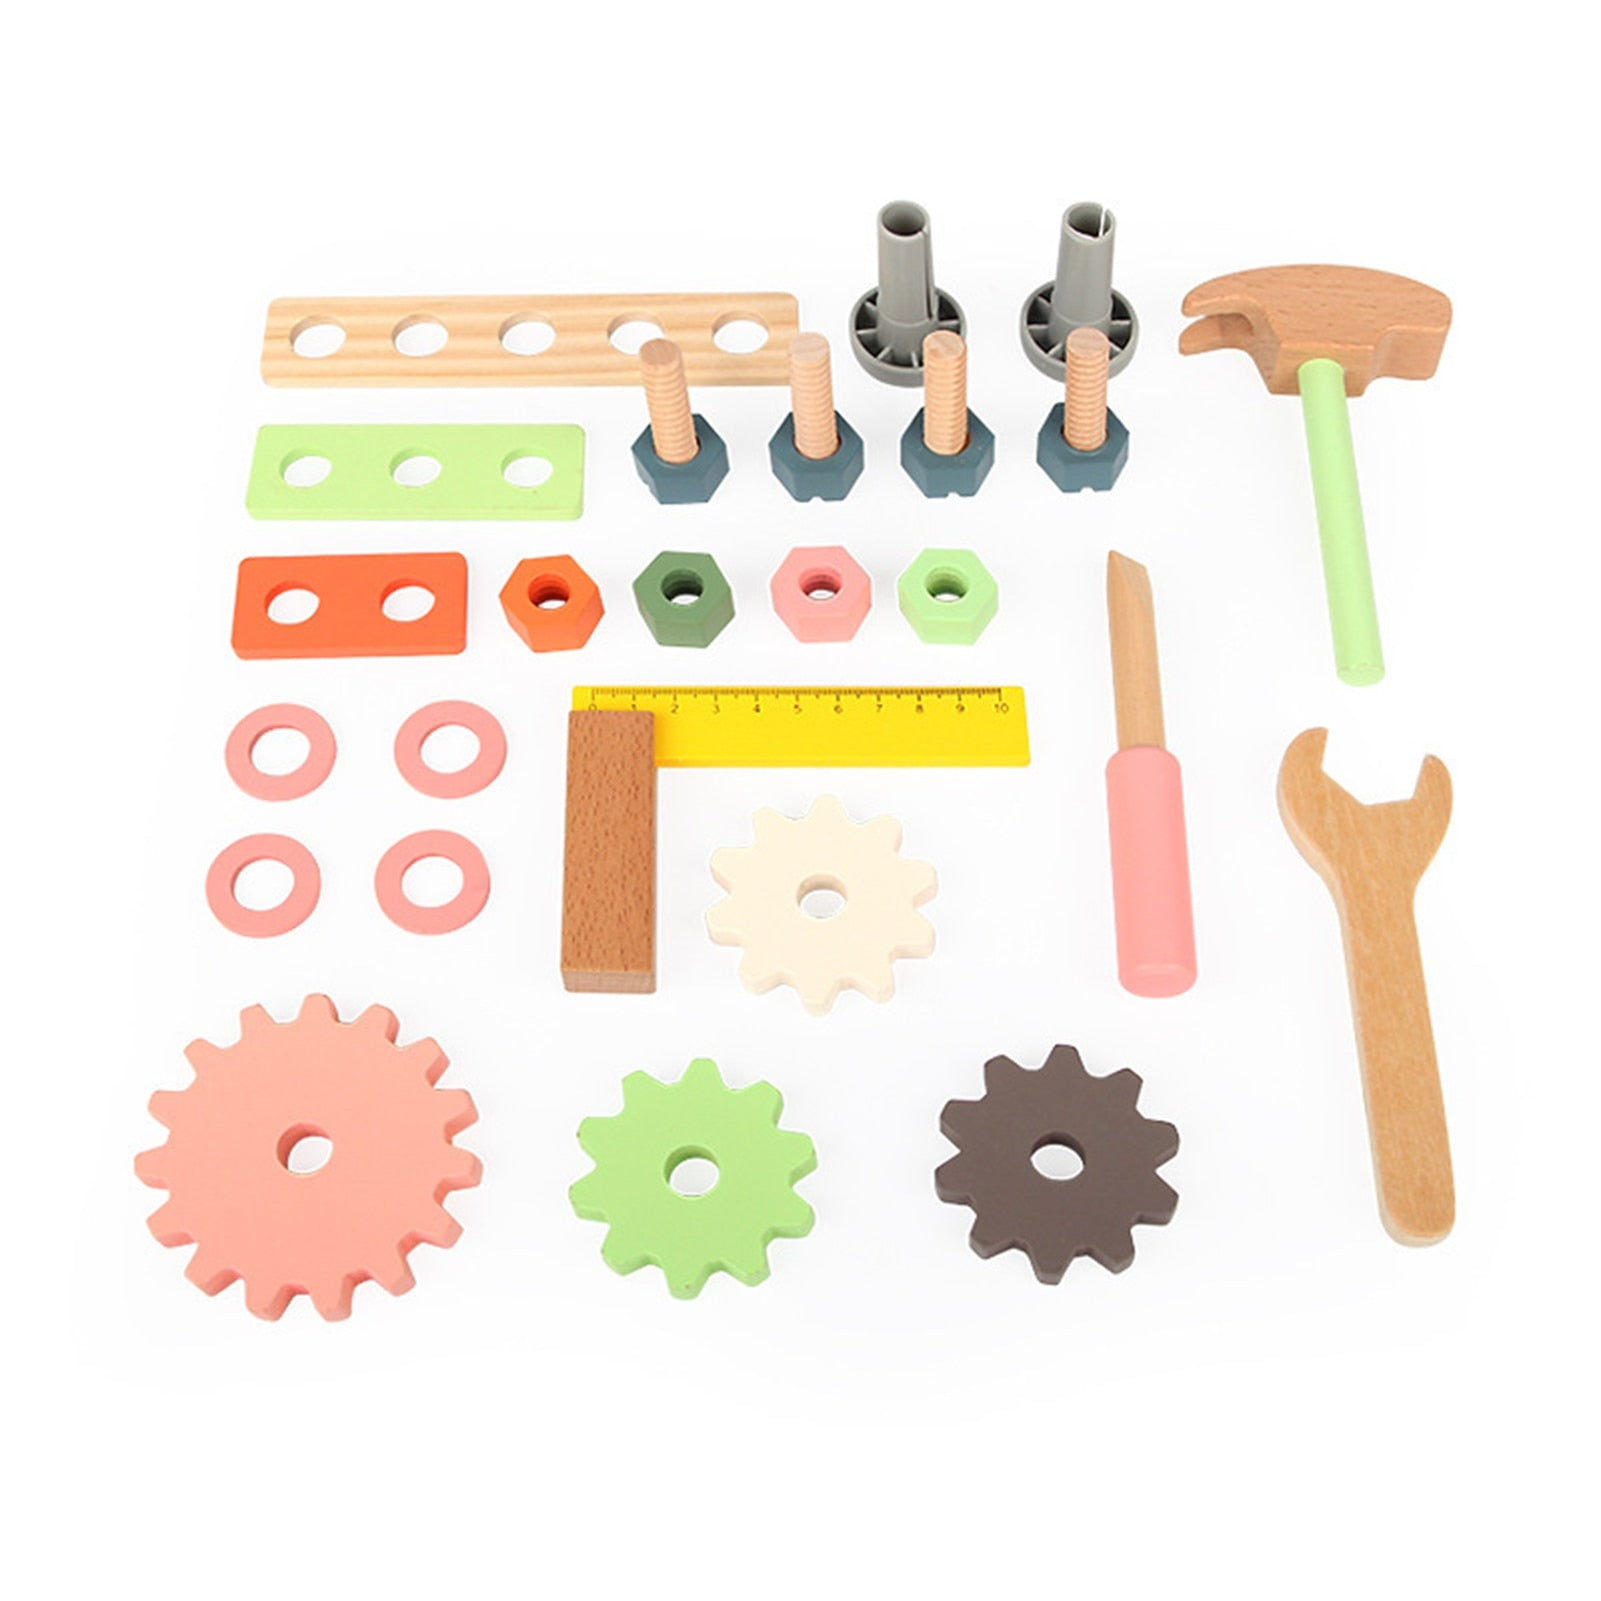 Wooden Workbench Tools Set